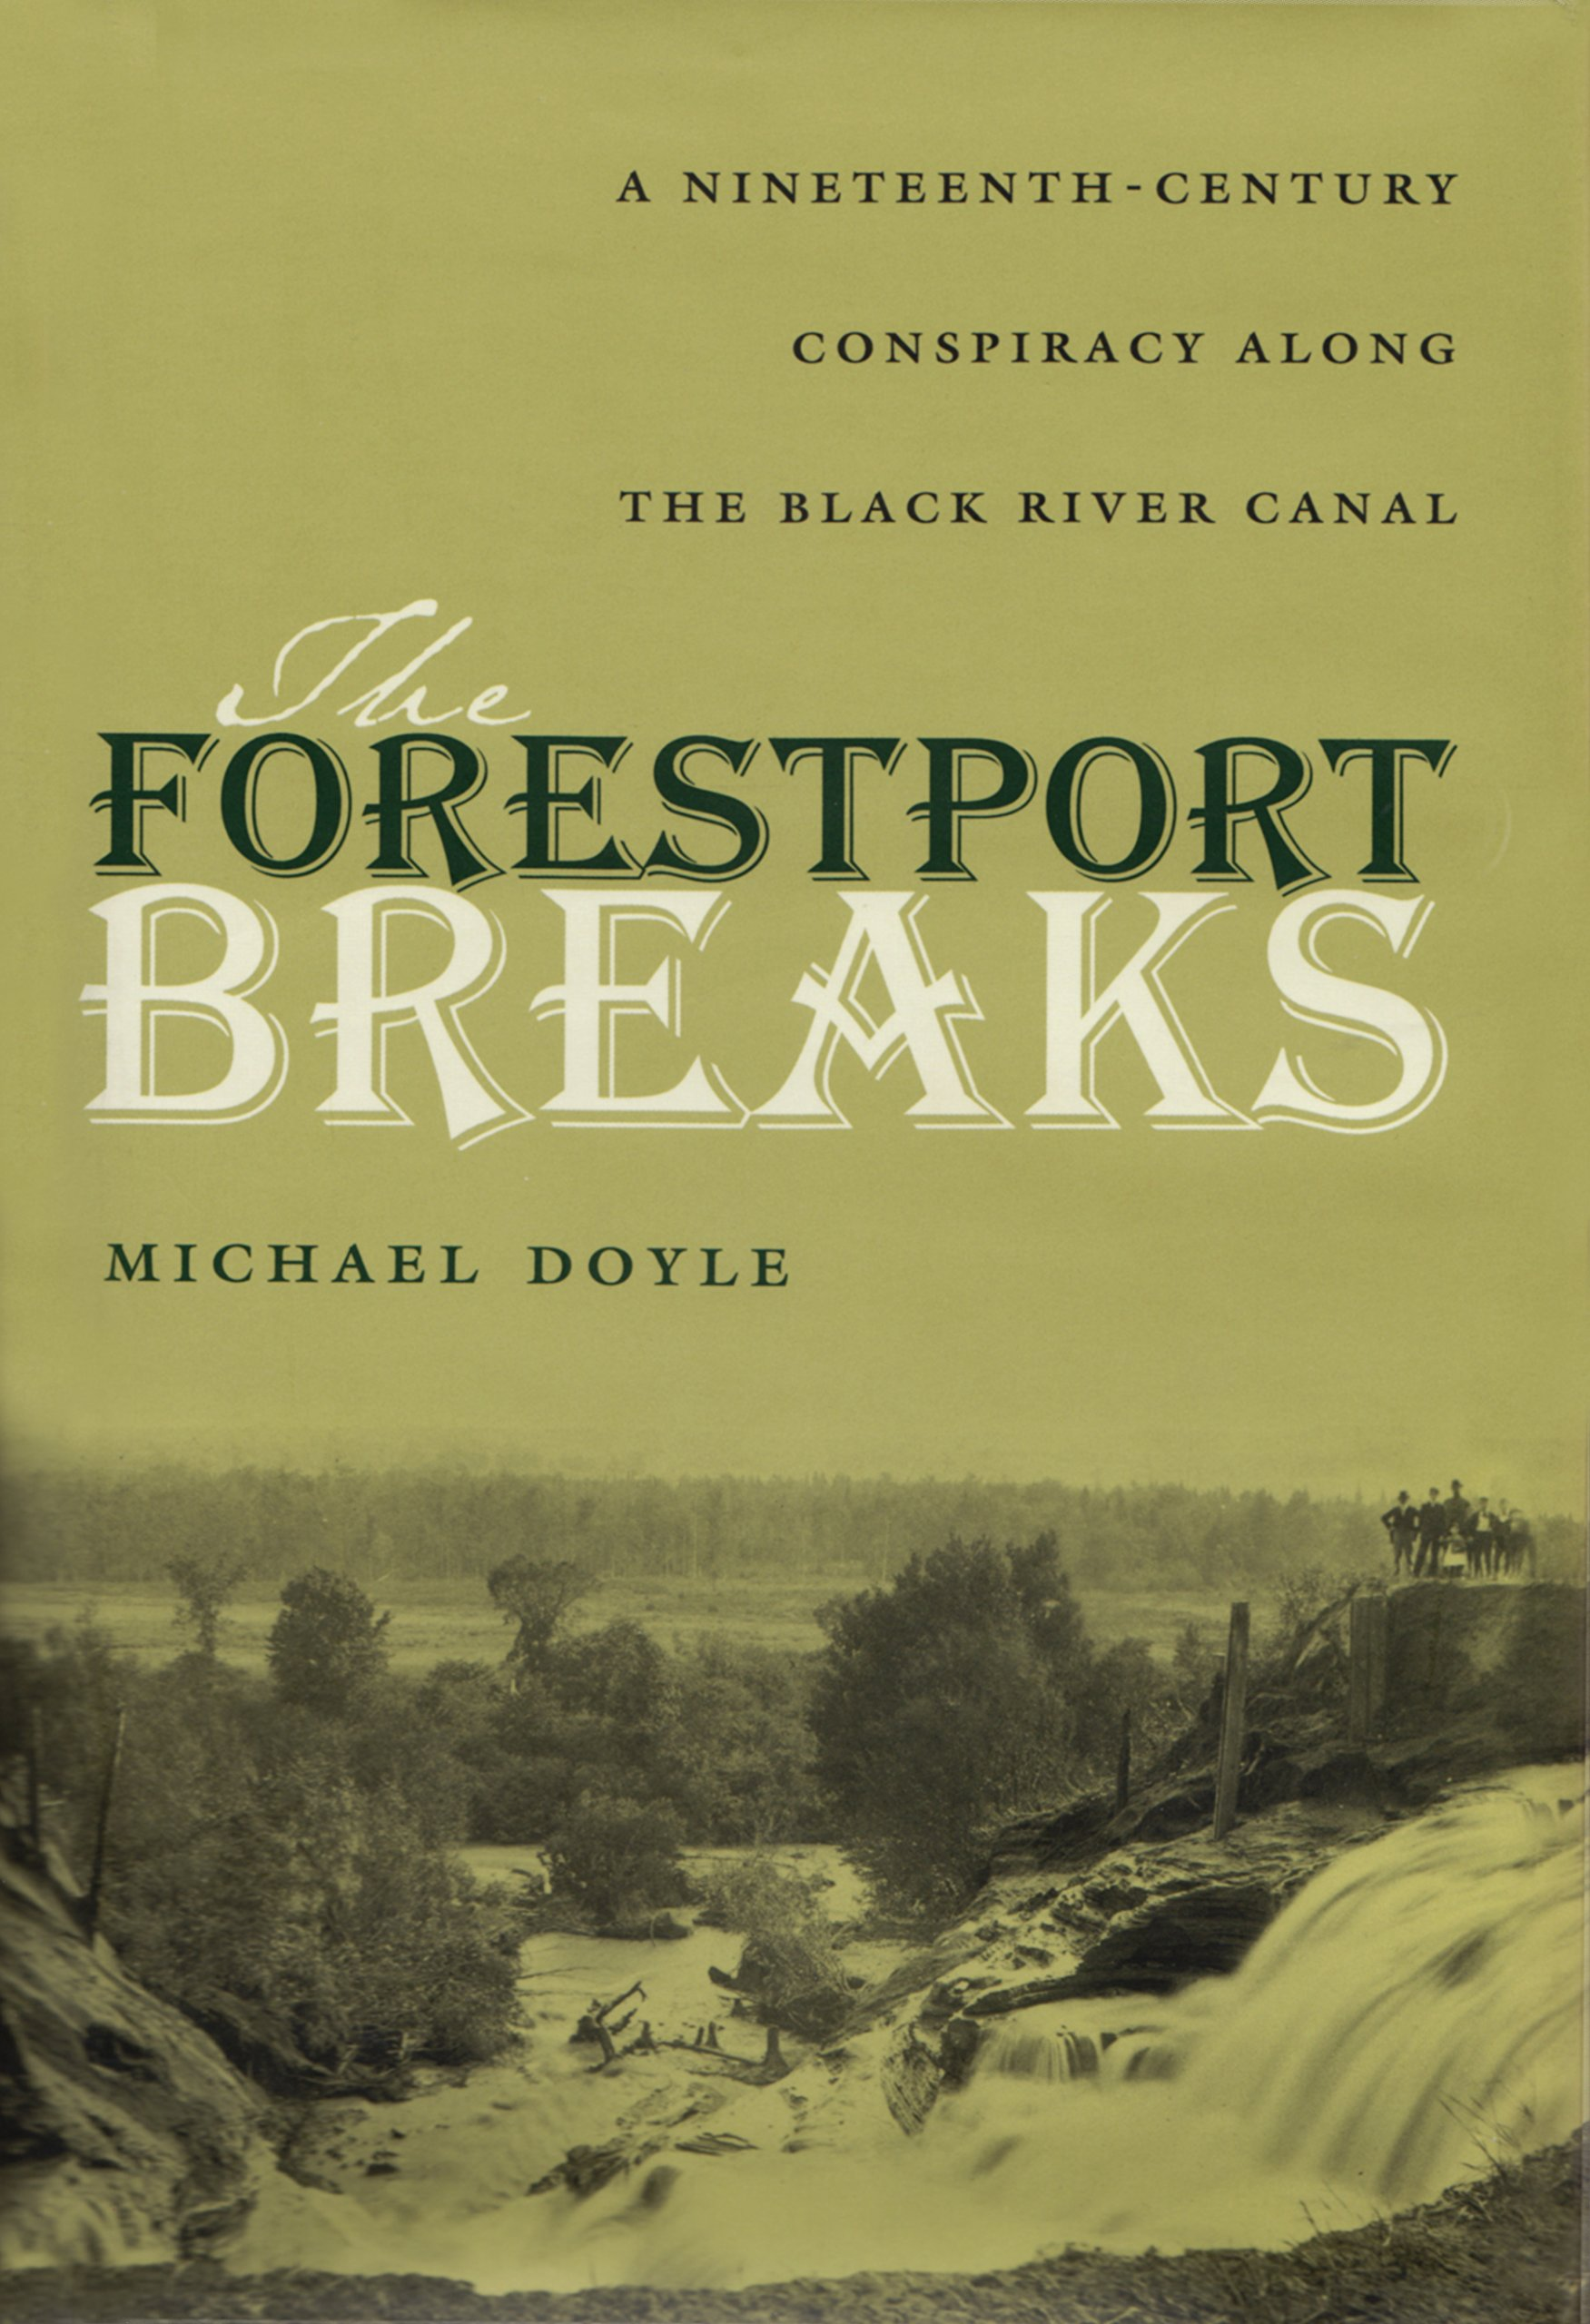 Read Online The Forestport Breaks: A Nineteenth-Century Conspiracy along the Black River Canal pdf epub